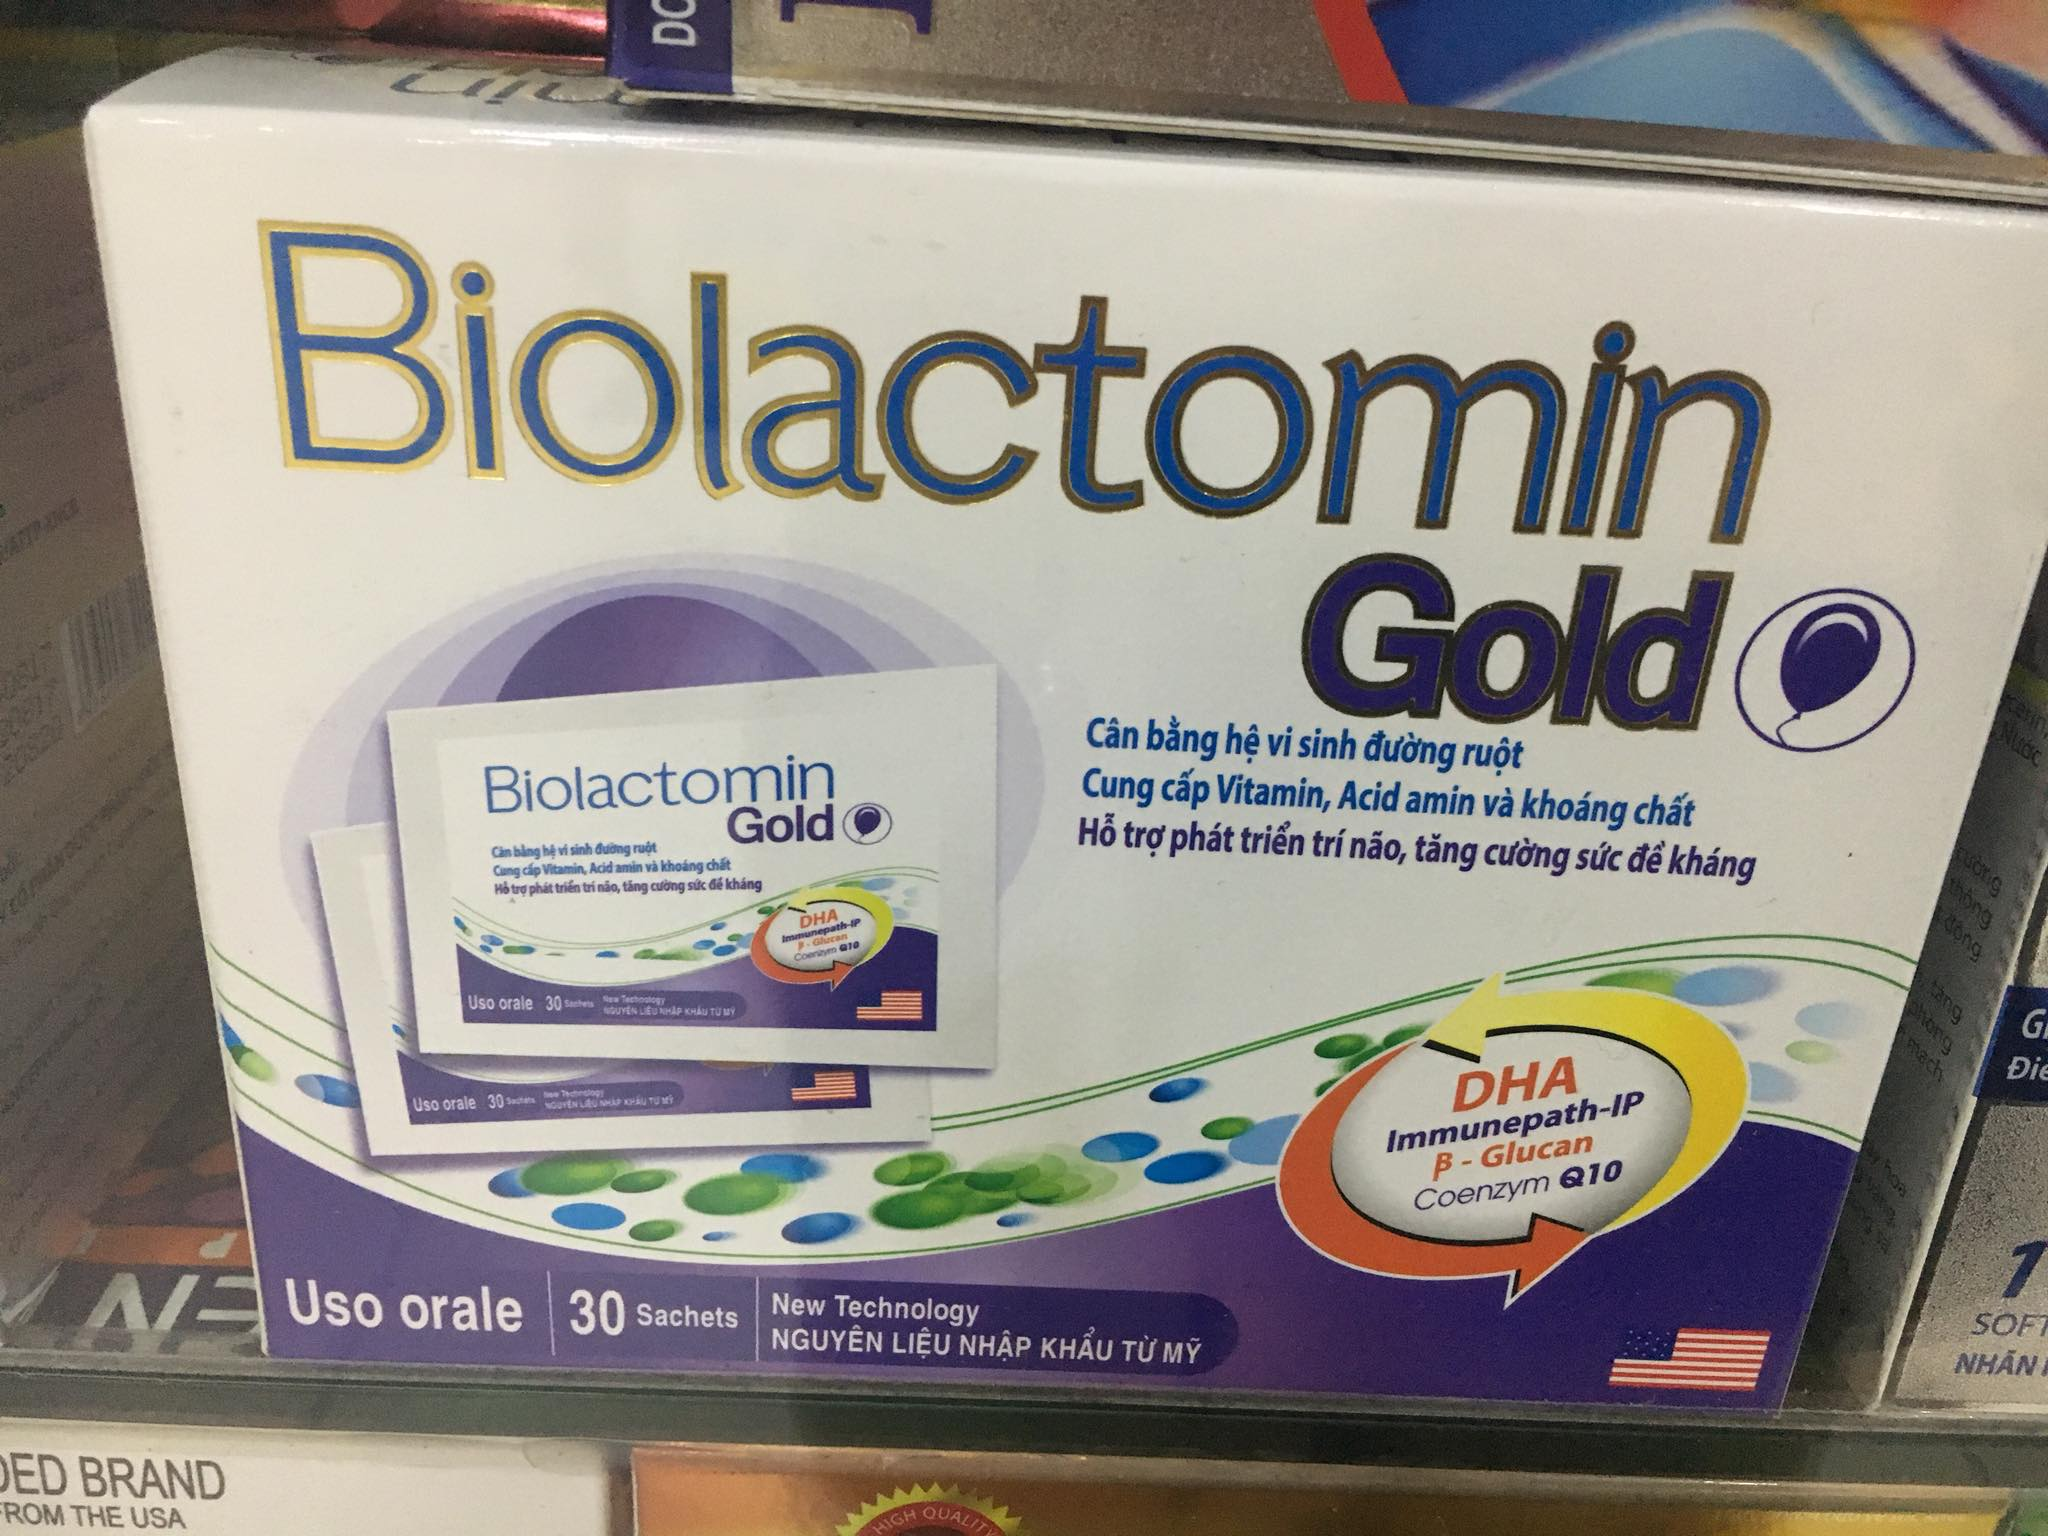 Biolactomin Gold